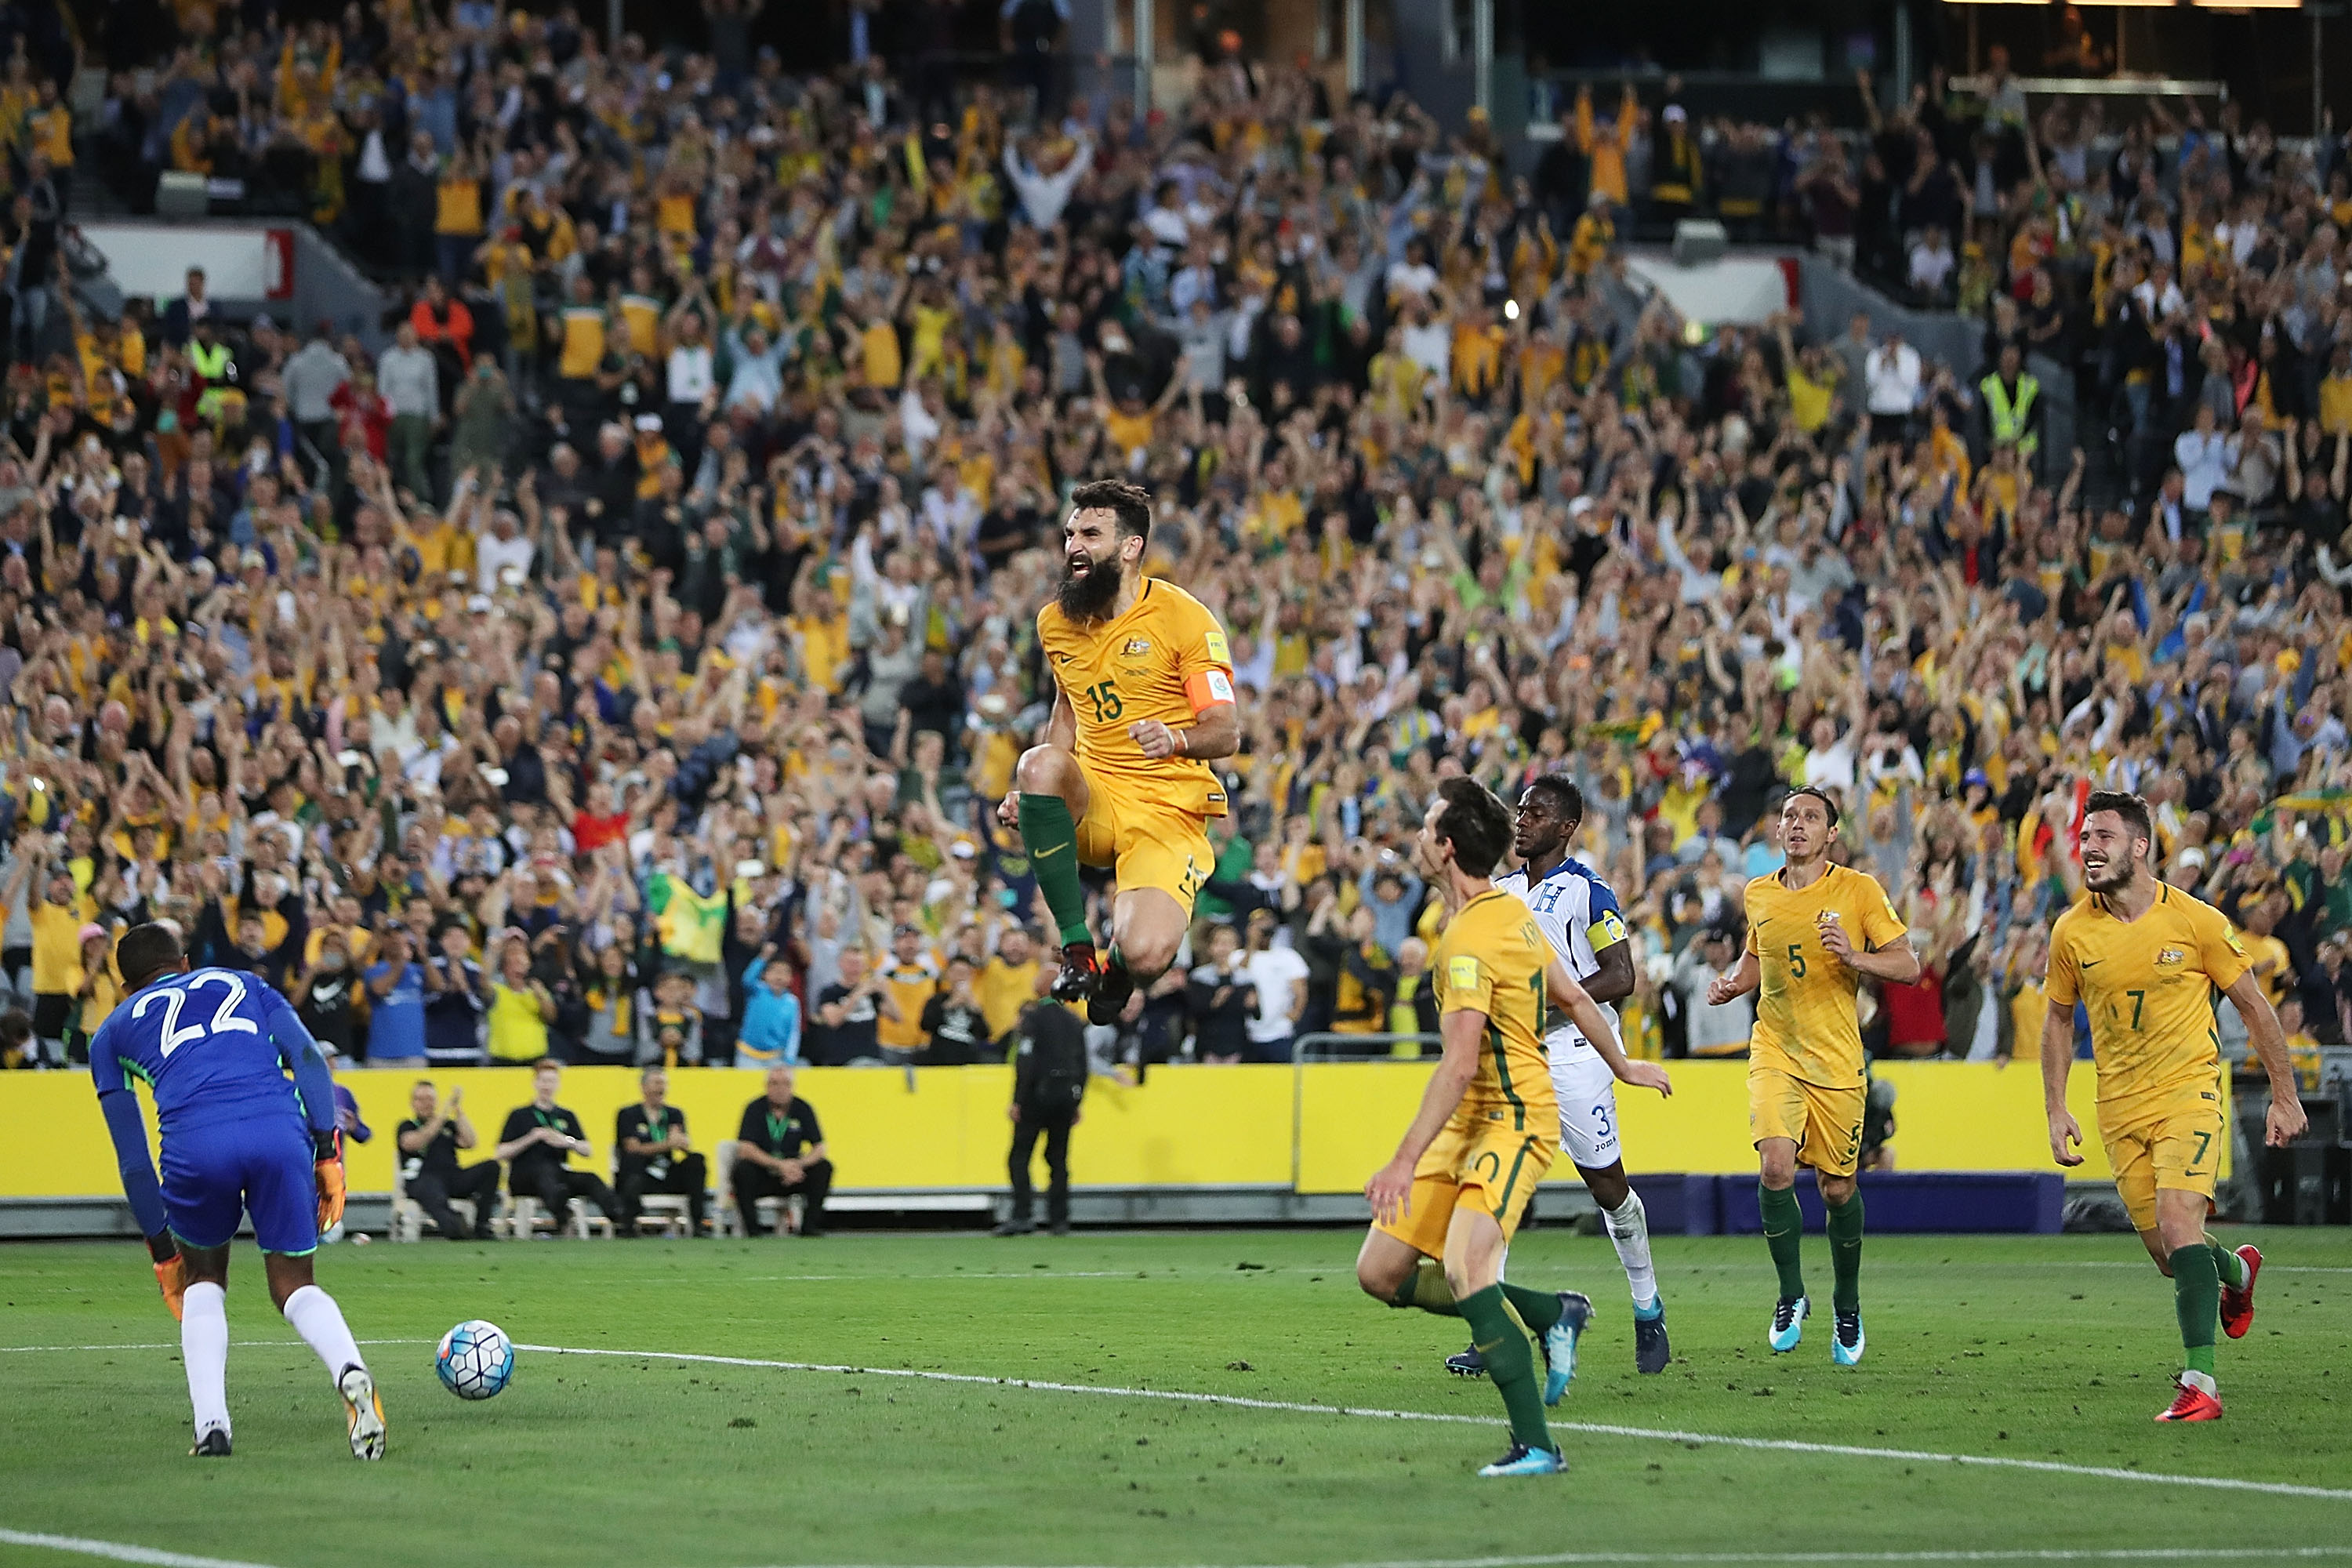 Mile Jedinak celebrates